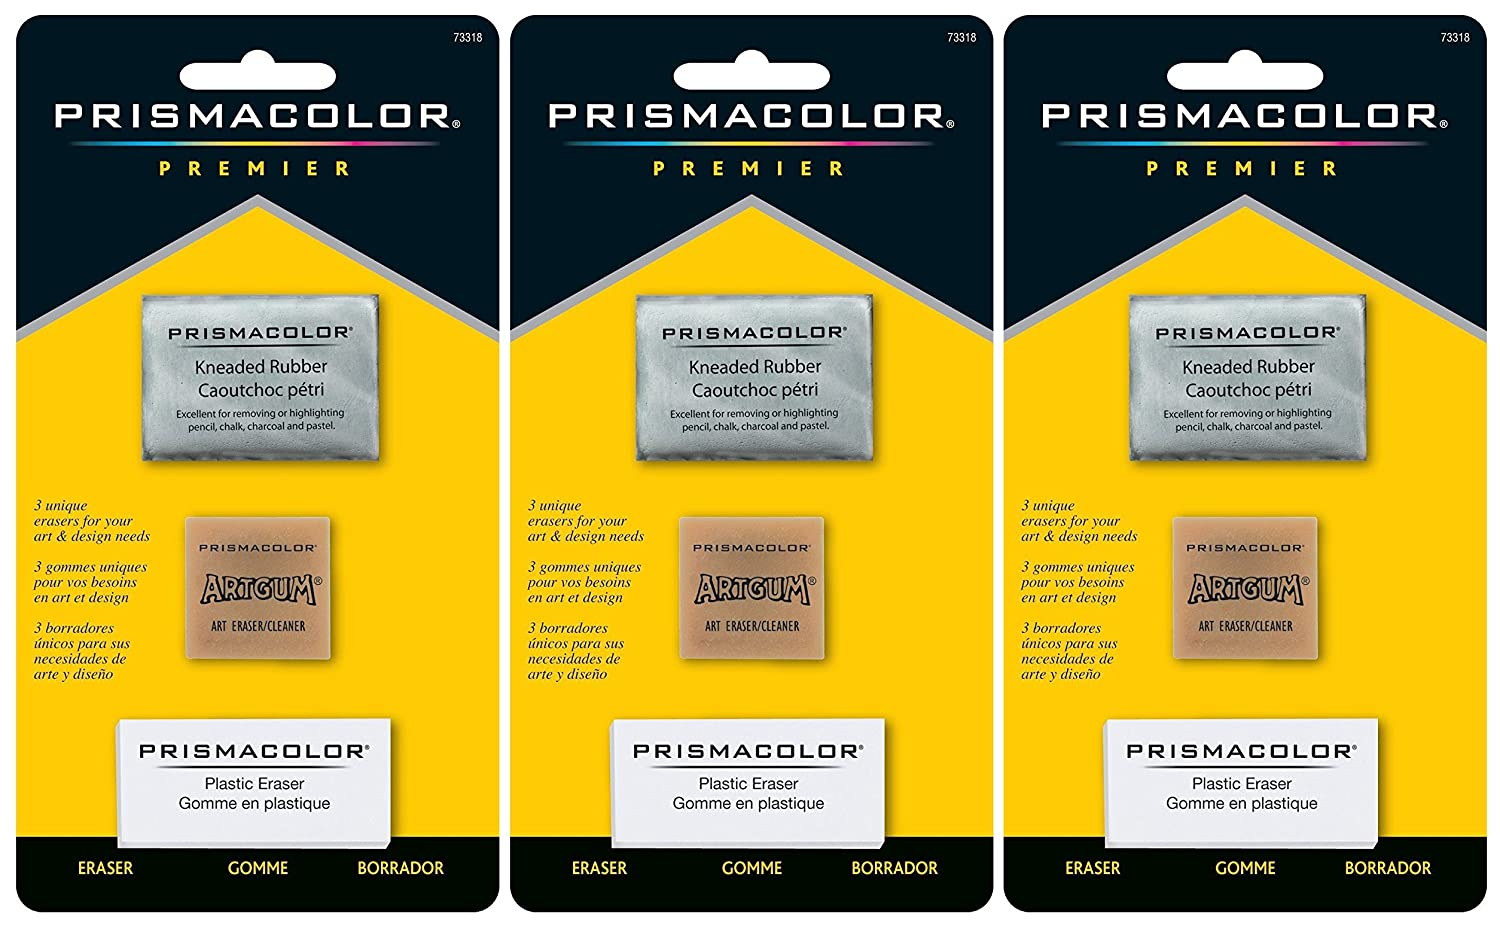 Sanford 2-PACK - Prismacolor Premier Eraser Set - Kneaded, ArtGum and Plastic Erasers, Set of 3 Art Gum 4336950582